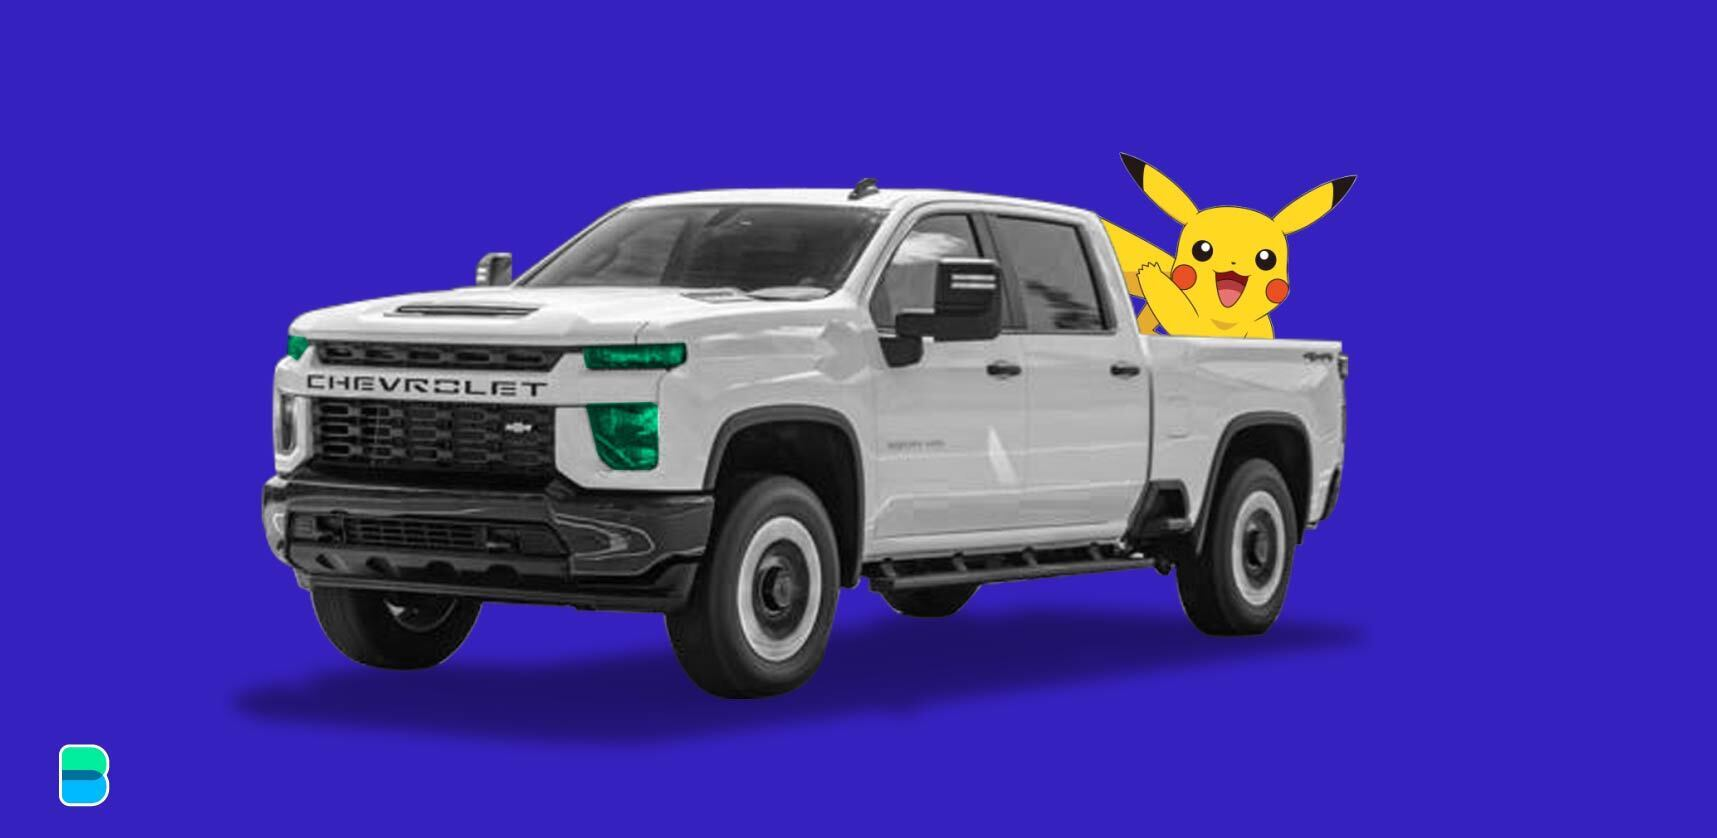 What do Pikachu and the Chevy Silverado have in common?